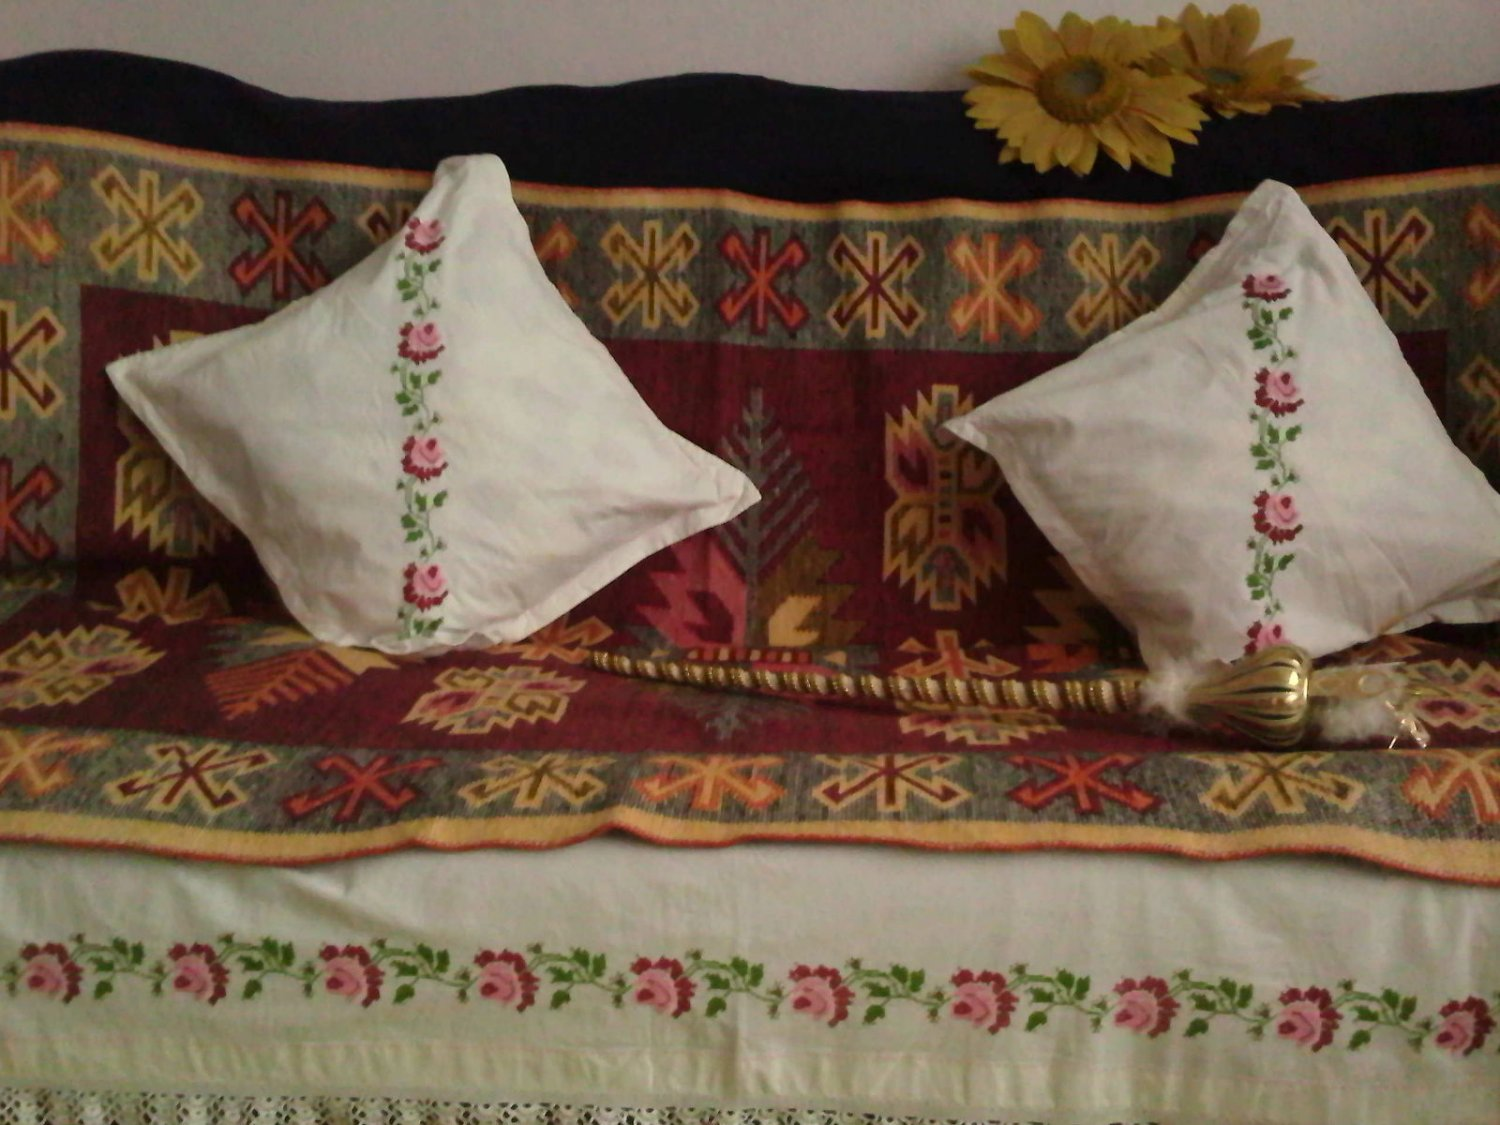 from 1950 antique sofa ottoman couch cover for your vintage and antique collection or your room